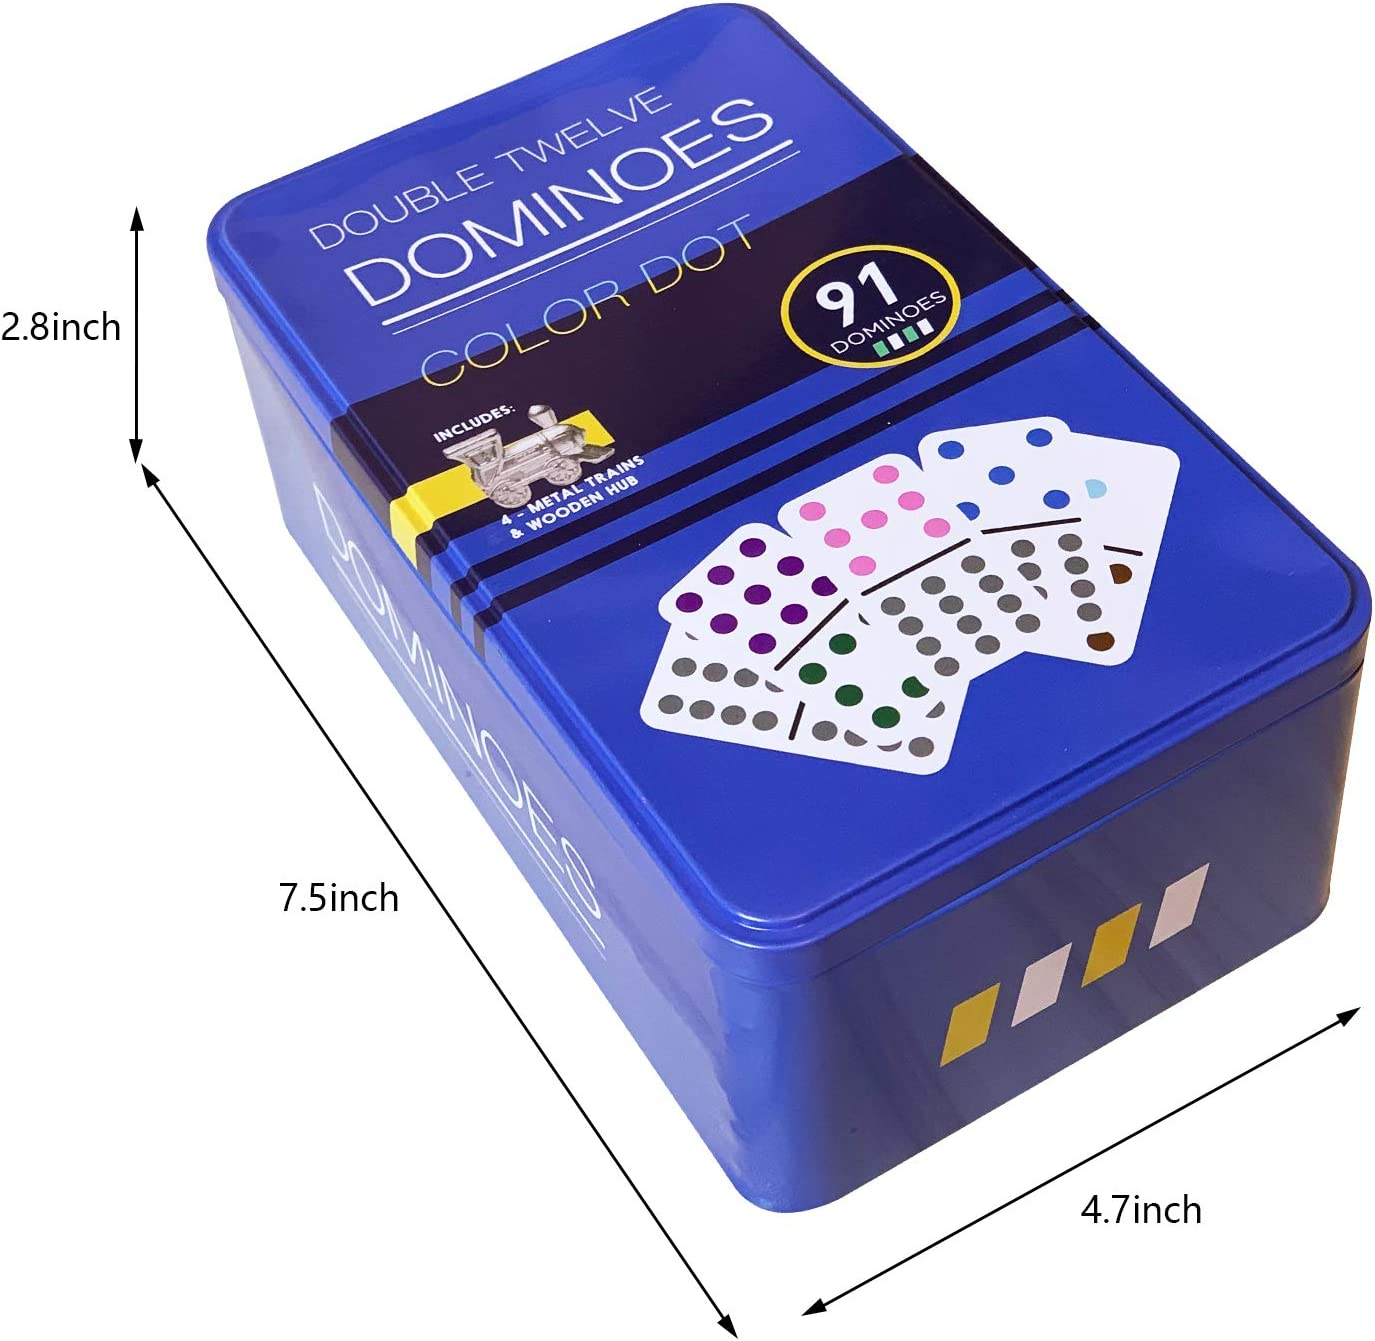 and Collectors Tin 91 Pieces Set Toy in Tin Case with Wooden Hub 4 Metal Trains Perfect for Kids or Families Redipo Double 12 Colored Dot Dominoes